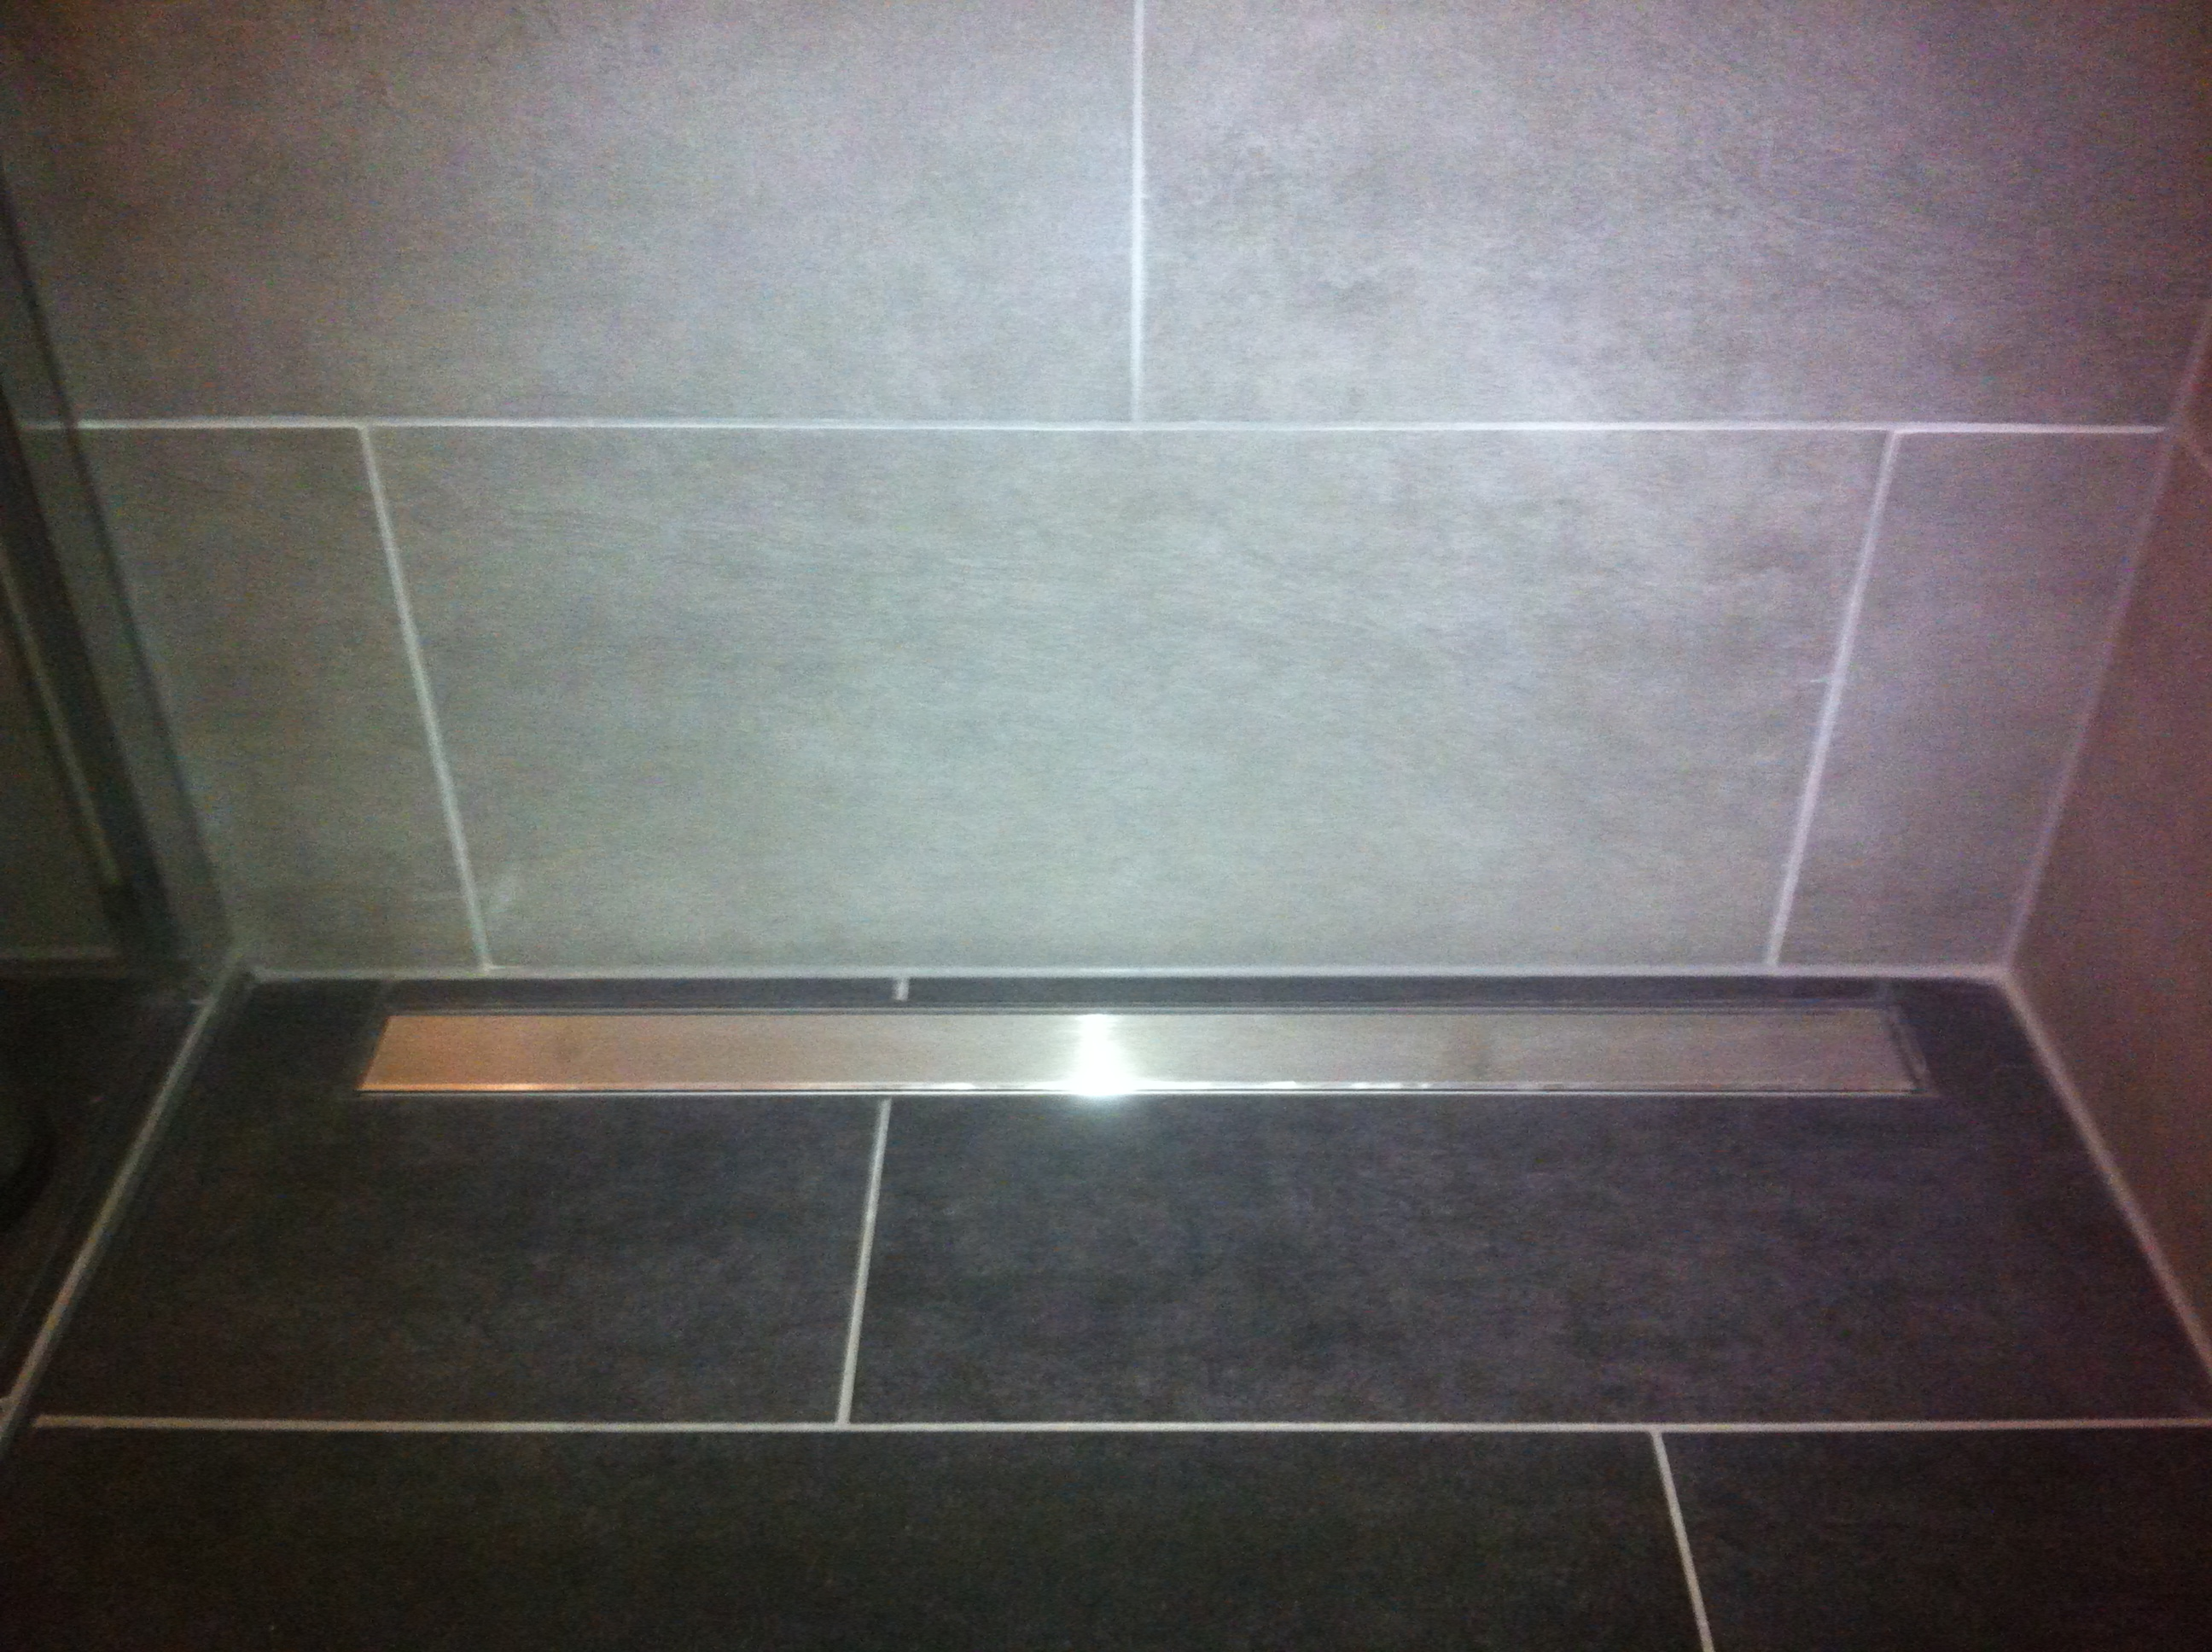 R novation d une salle de bain veyras revey s rl for Renovation carrelage sol